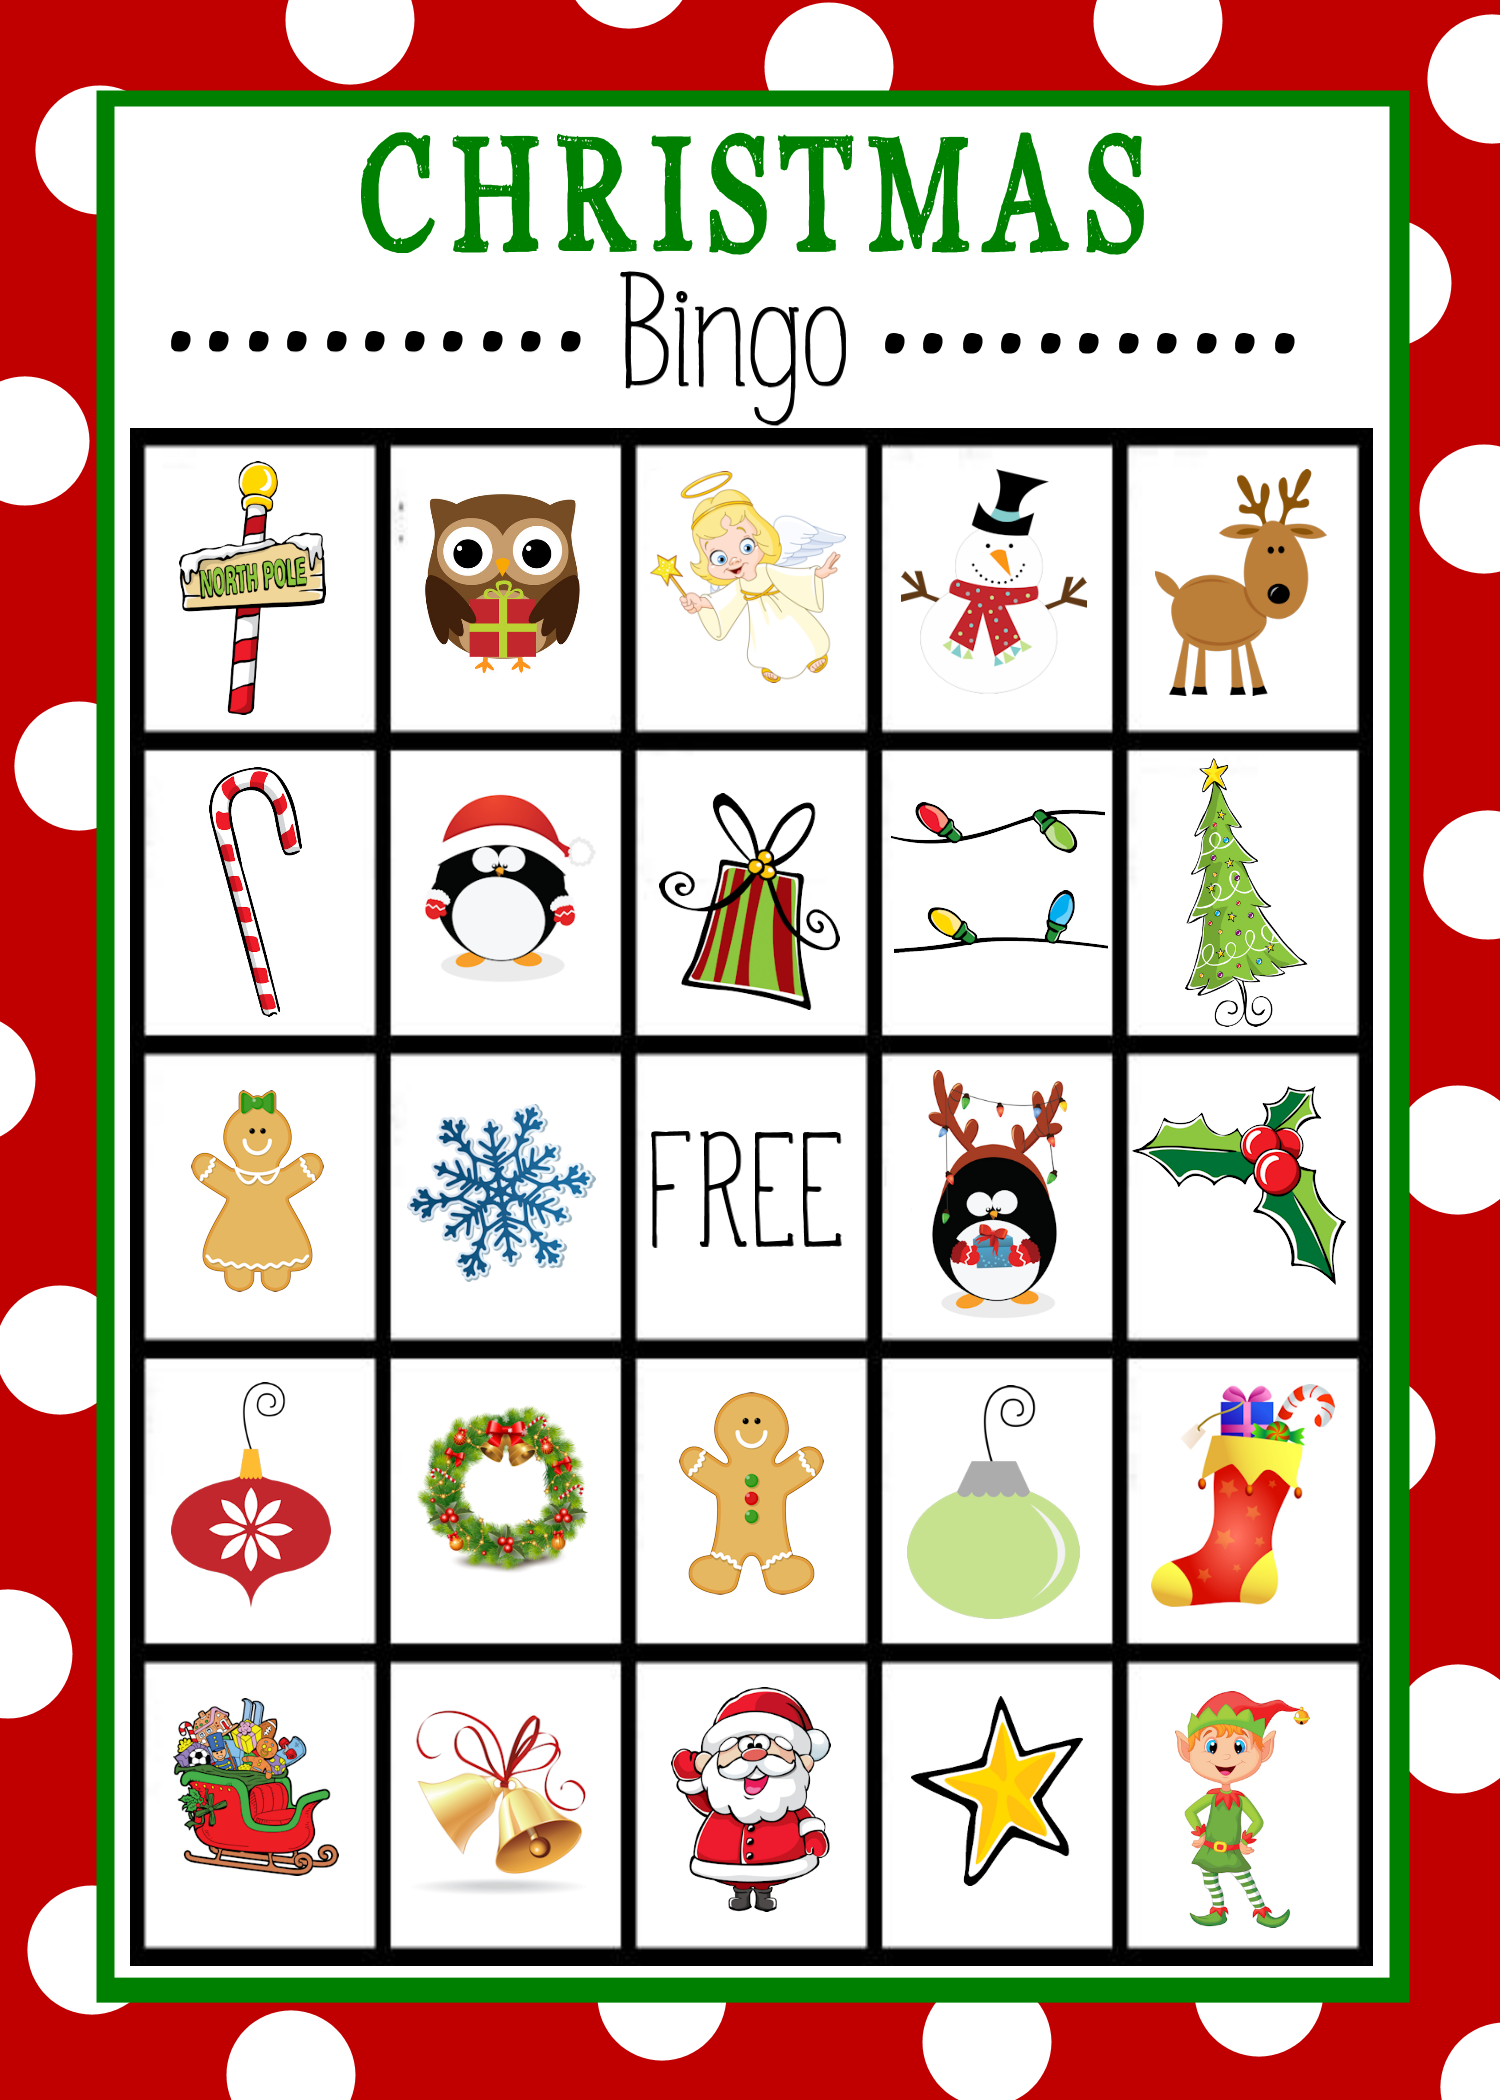 9 Images of Printable Christmas Bingo Game